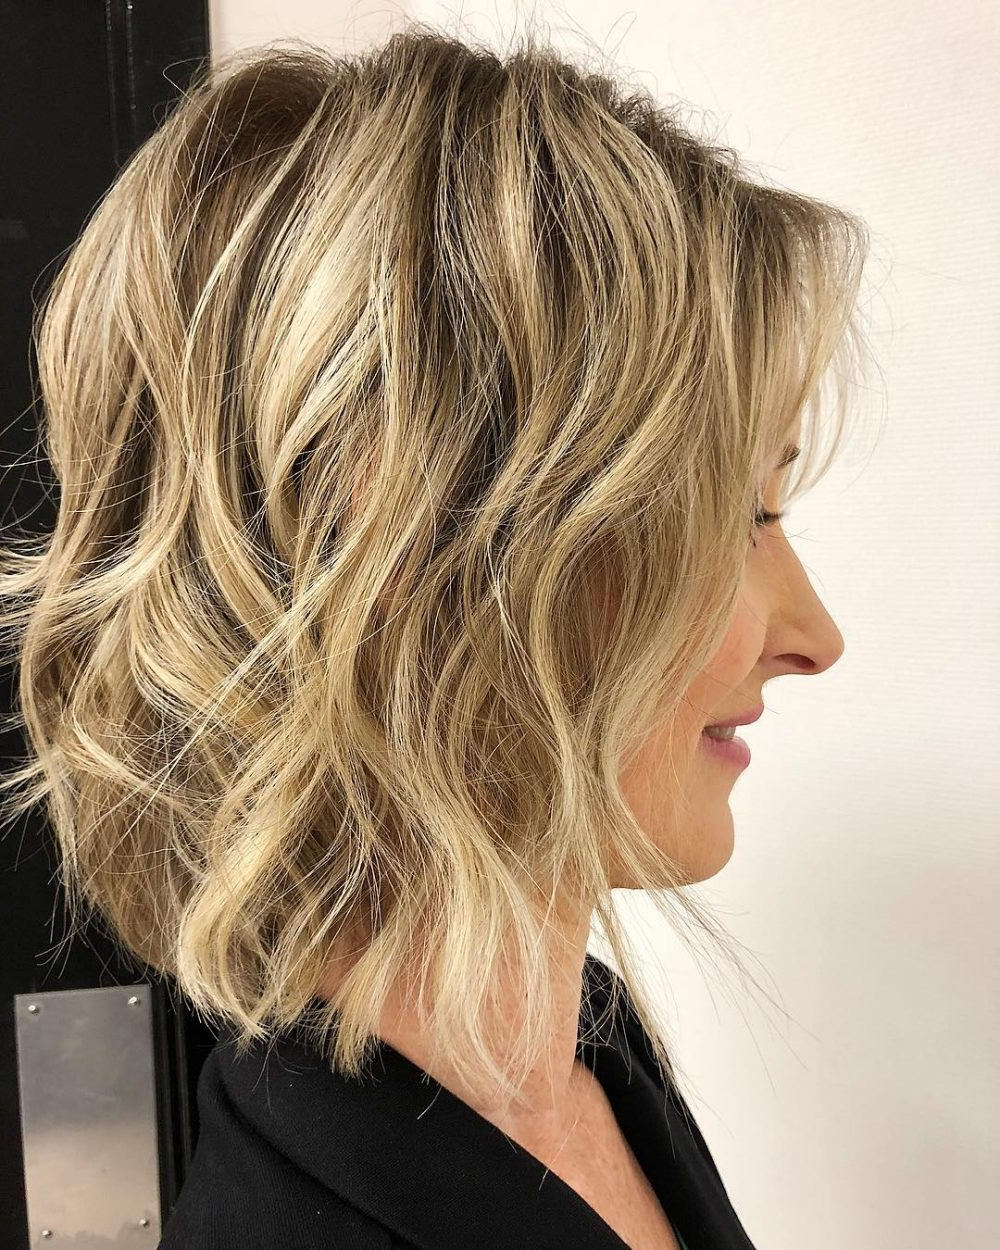 43 Perfect Short Hairstyles For Fine Hair In 2018 With Short Bob Hairstyles With Feathered Layers (Gallery 16 of 20)